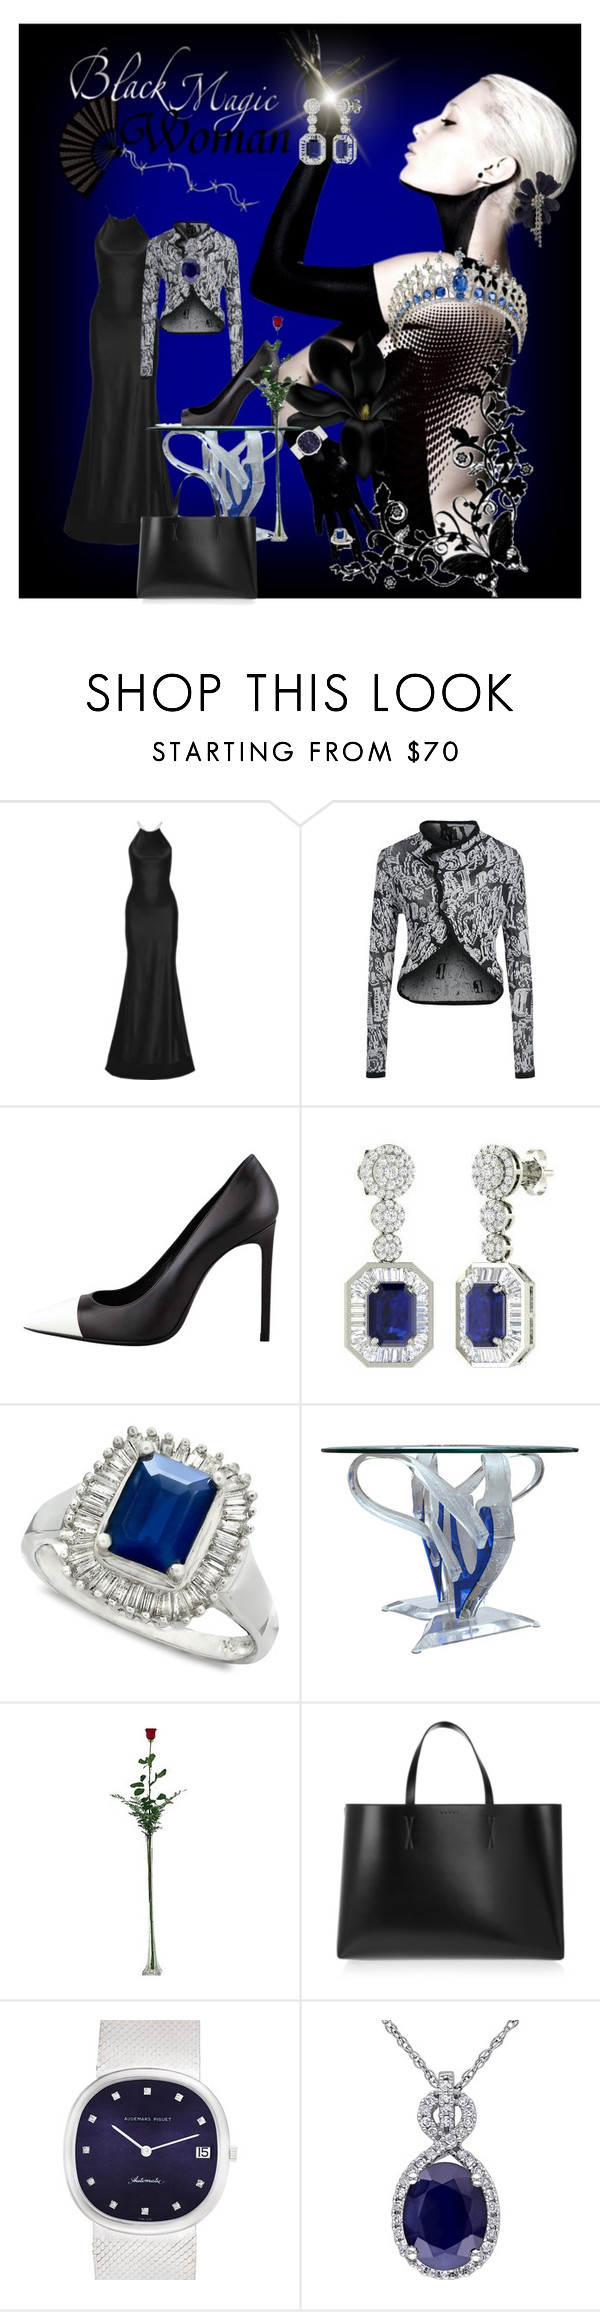 """""""Magic"""" by bren-johnson ❤ liked on Polyvore featuring Calvin Klein Collection, Desigual, Yves Saint Laurent, R.H. Macy's & Co., Mellerio, Marni, Audemars Piguet and Lanvin"""